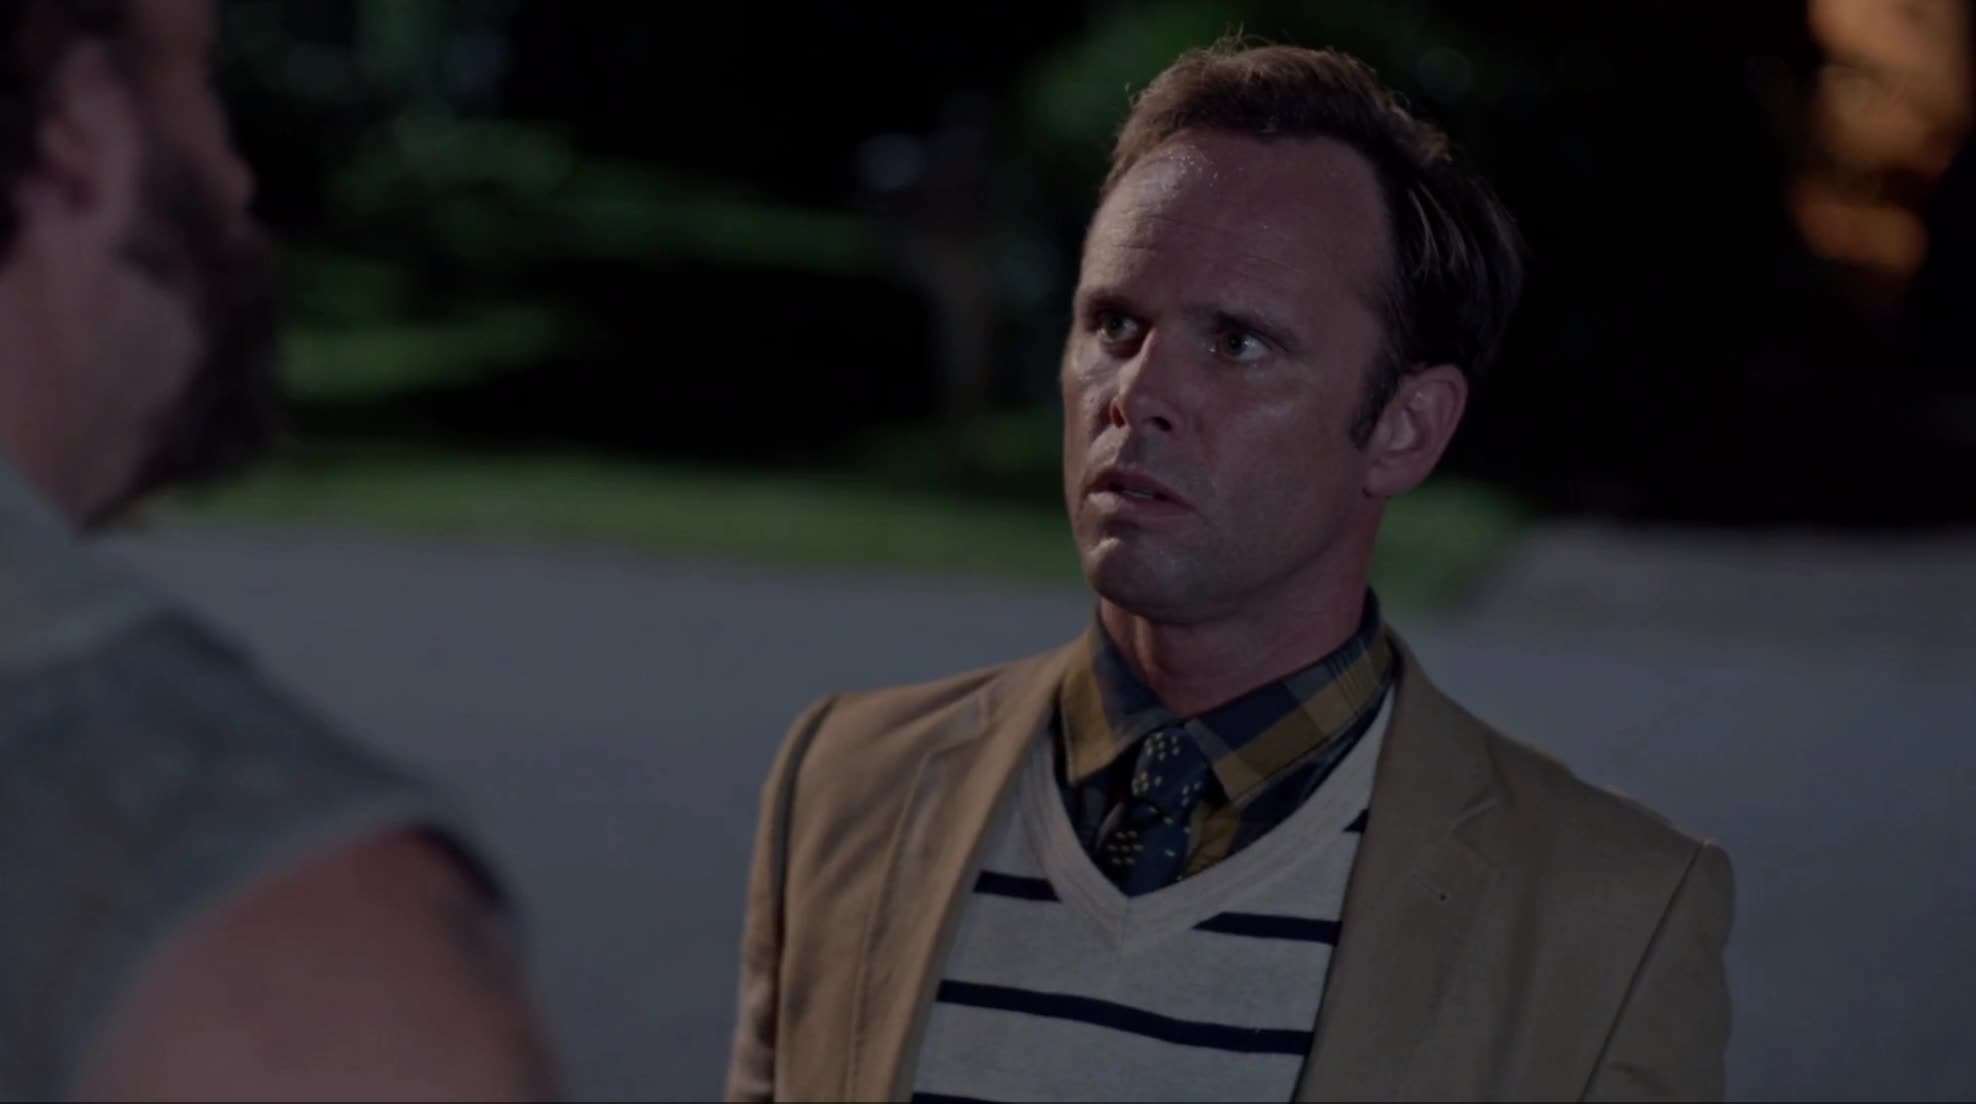 gifrequests, Crossing the line (Vice Principals) GIFs